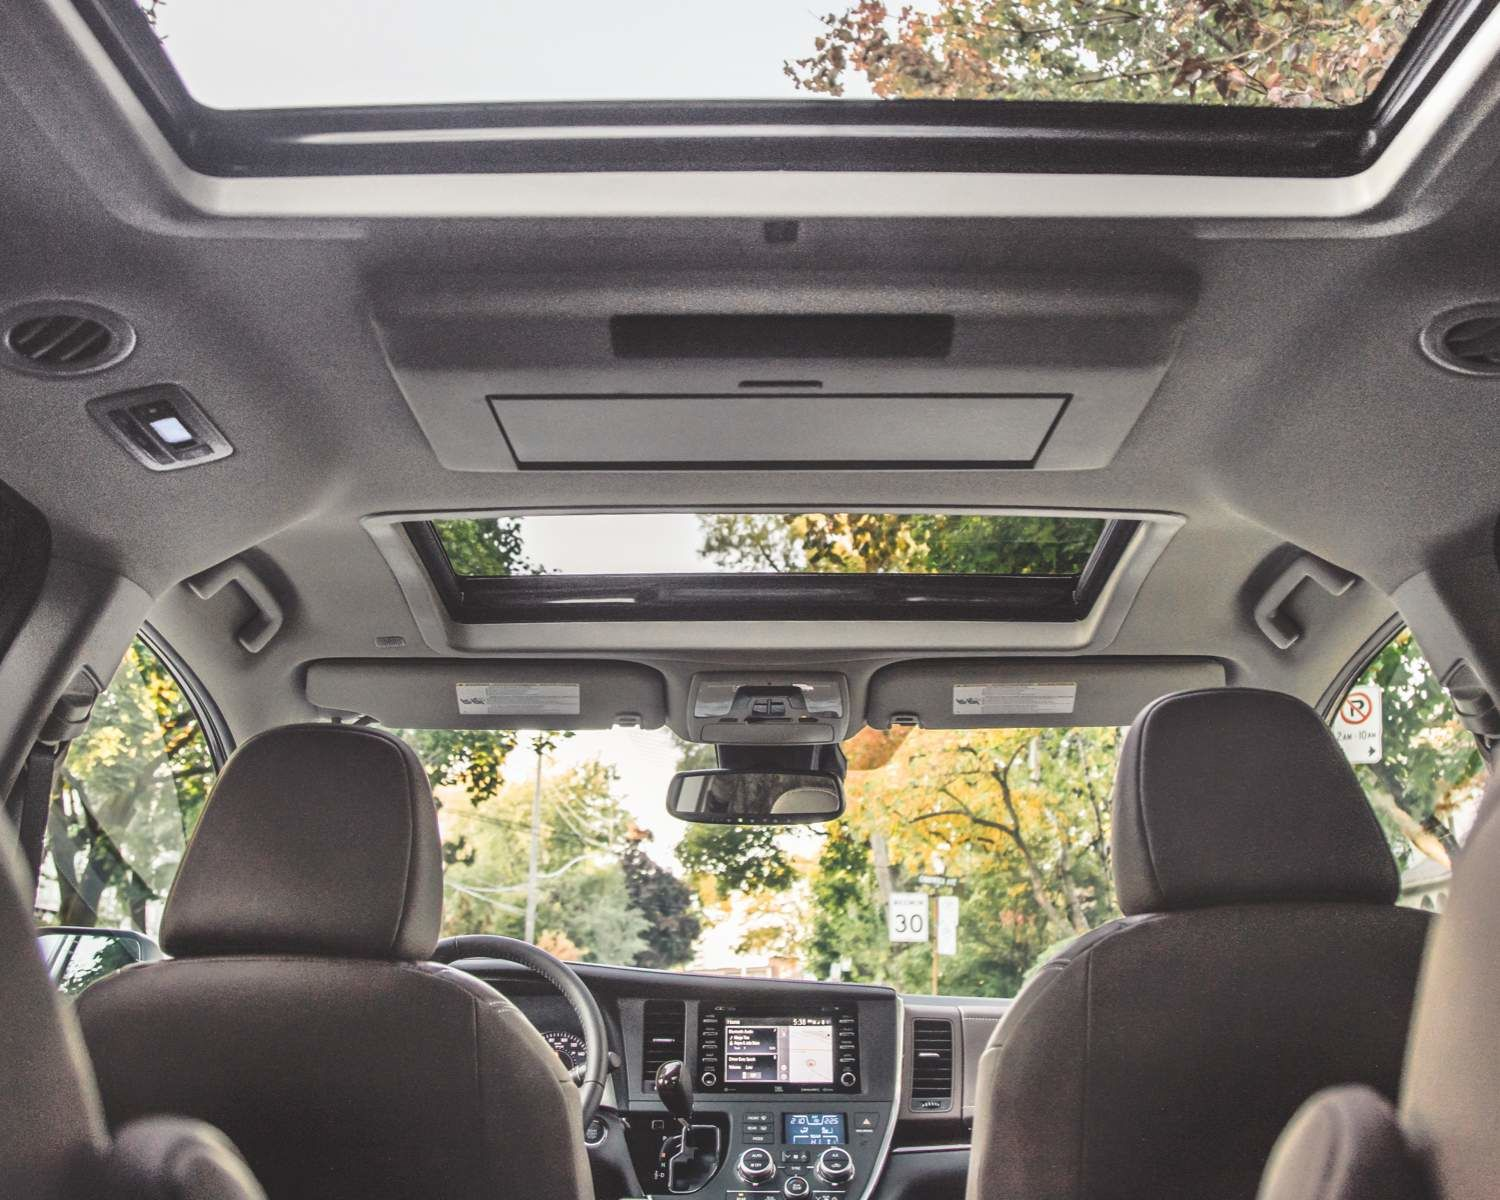 Sienna Interior and Moonroof